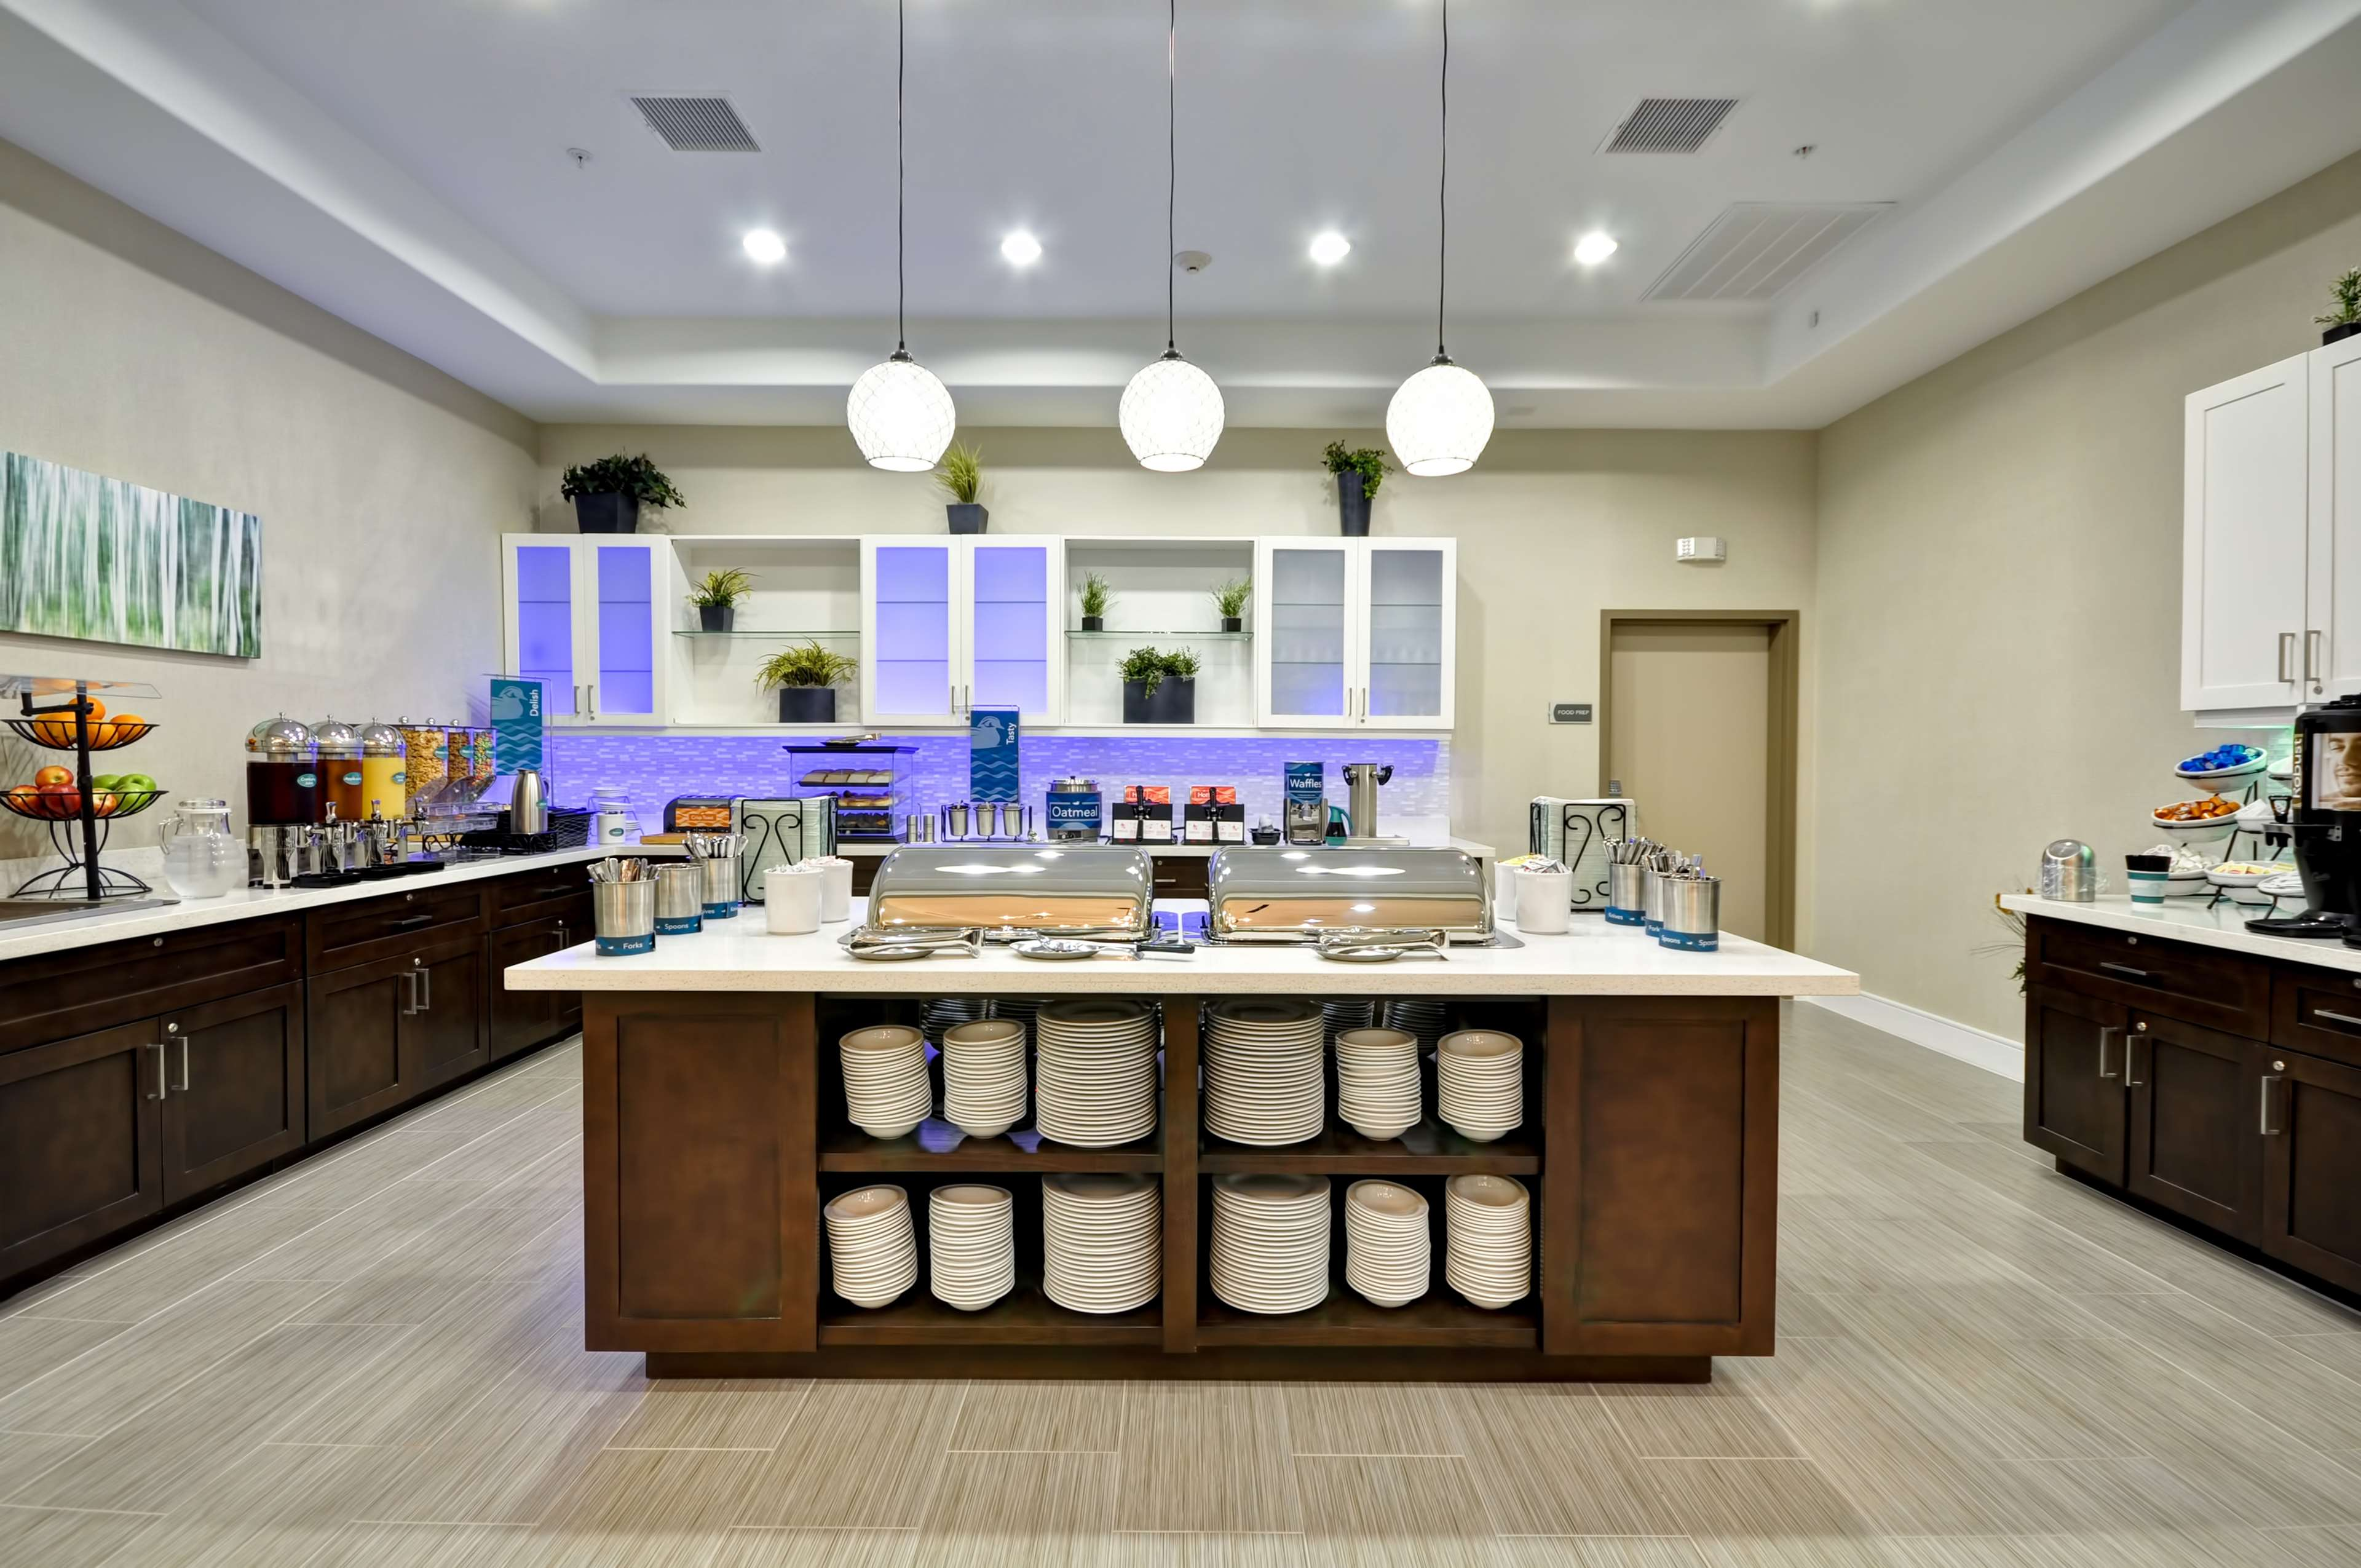 Homewood Suites by Hilton New Braunfels image 23